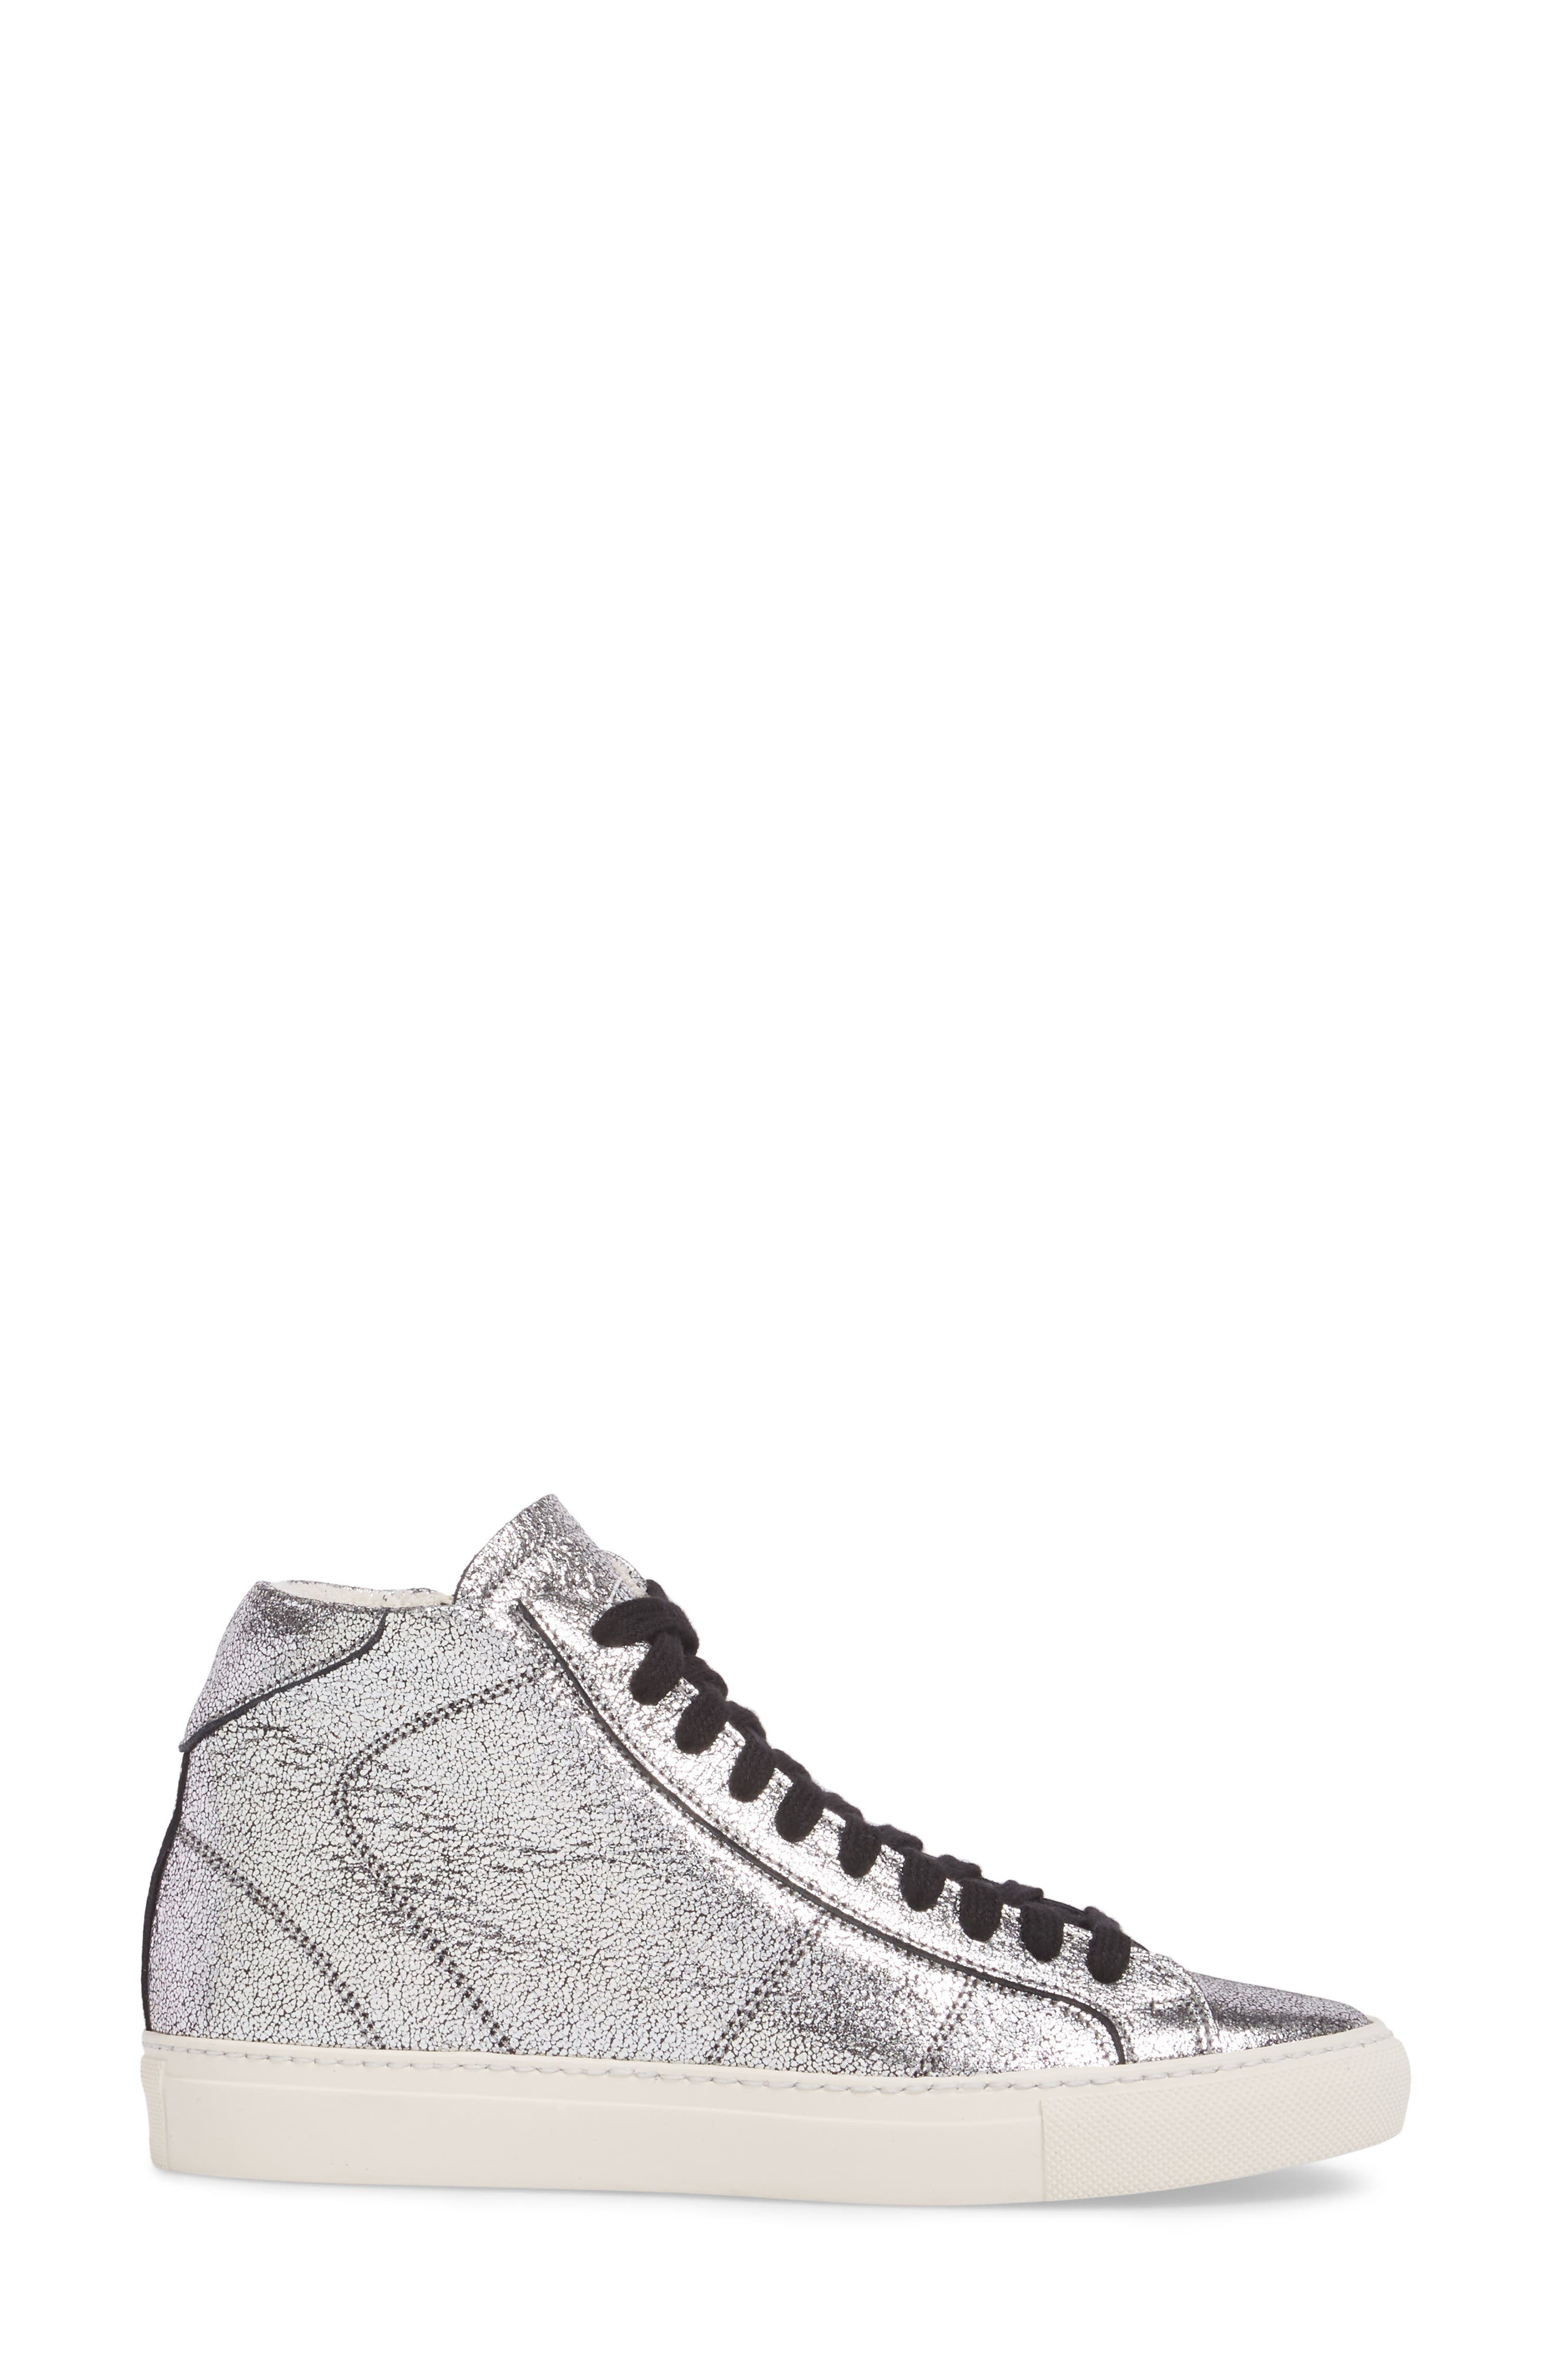 Star 2.0 Sneaker,                             Alternate thumbnail 3, color,                             SILVER LEATHER